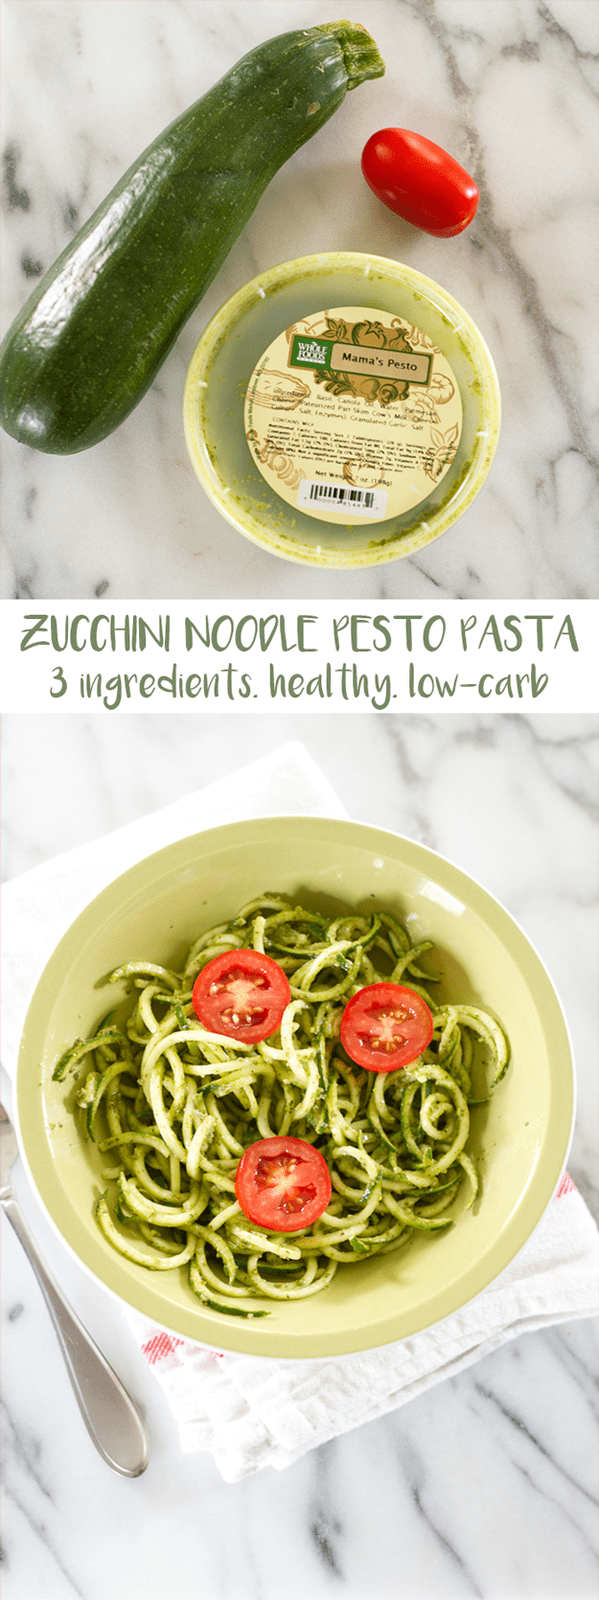 Zucchini Noodle Pesto Pasta // Only 3 ingredients, healthy, low carb and delicious!